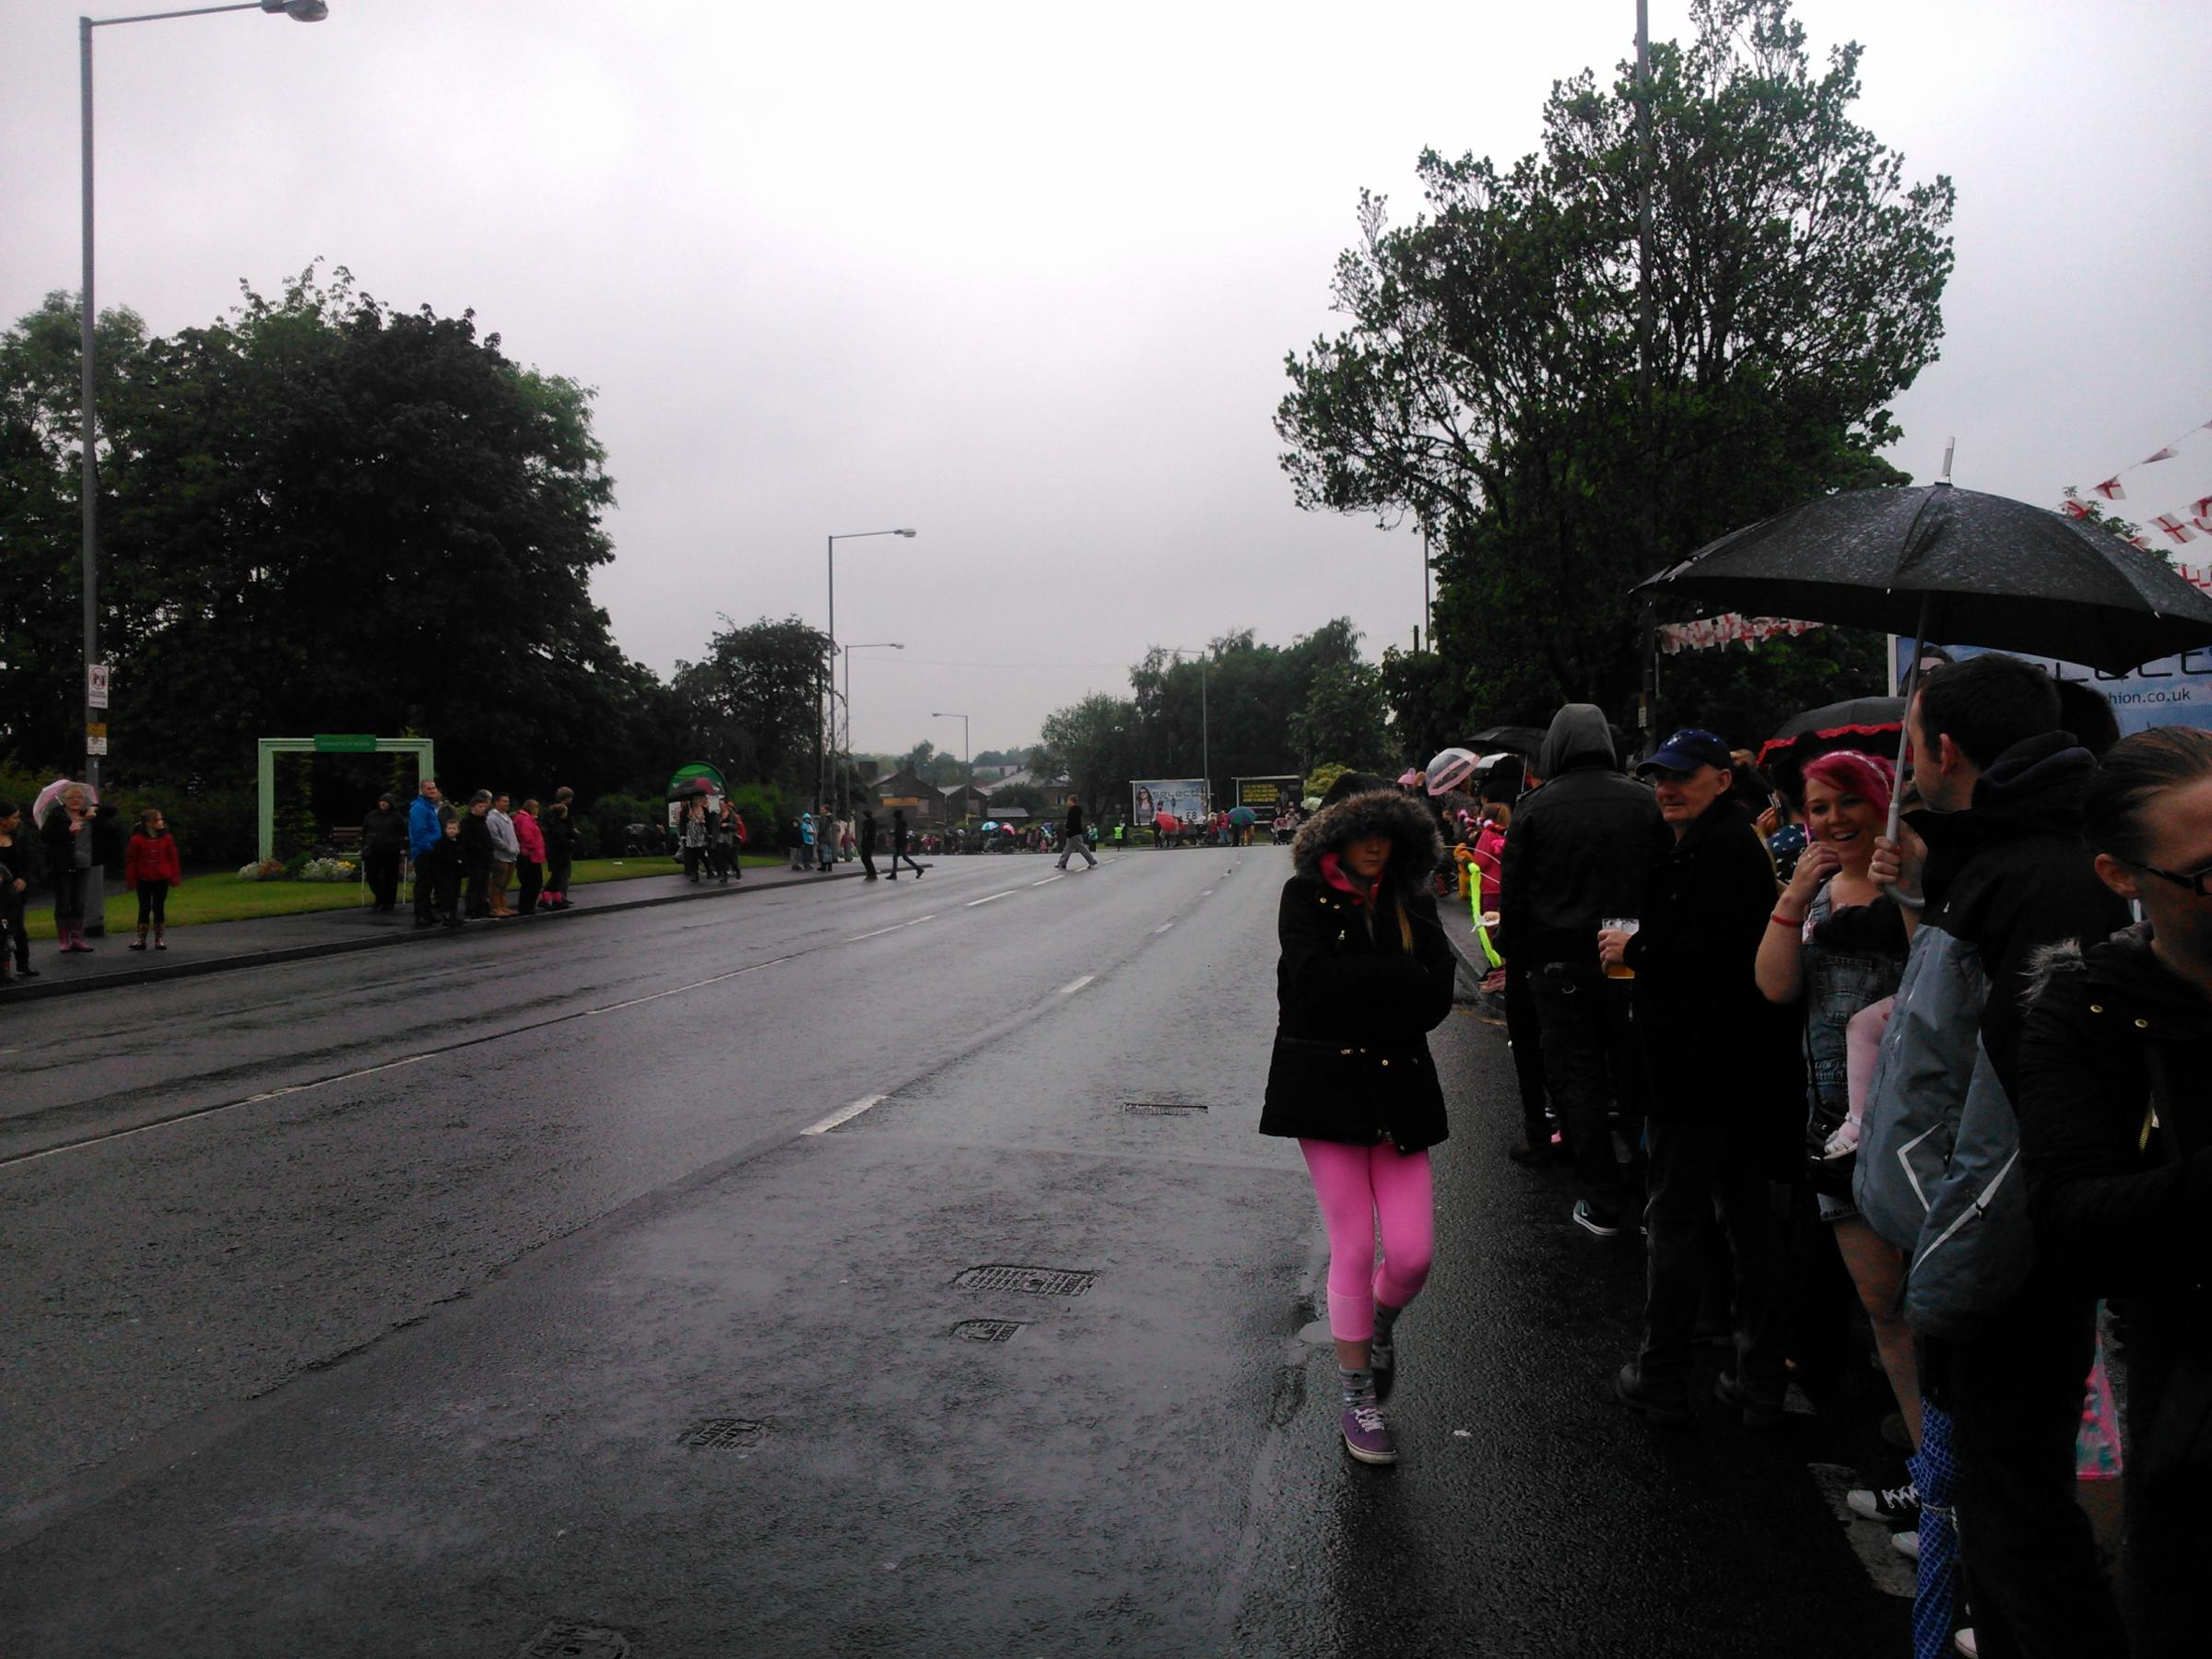 Radcliffe Carnival crowds up double on previous year despite downpours